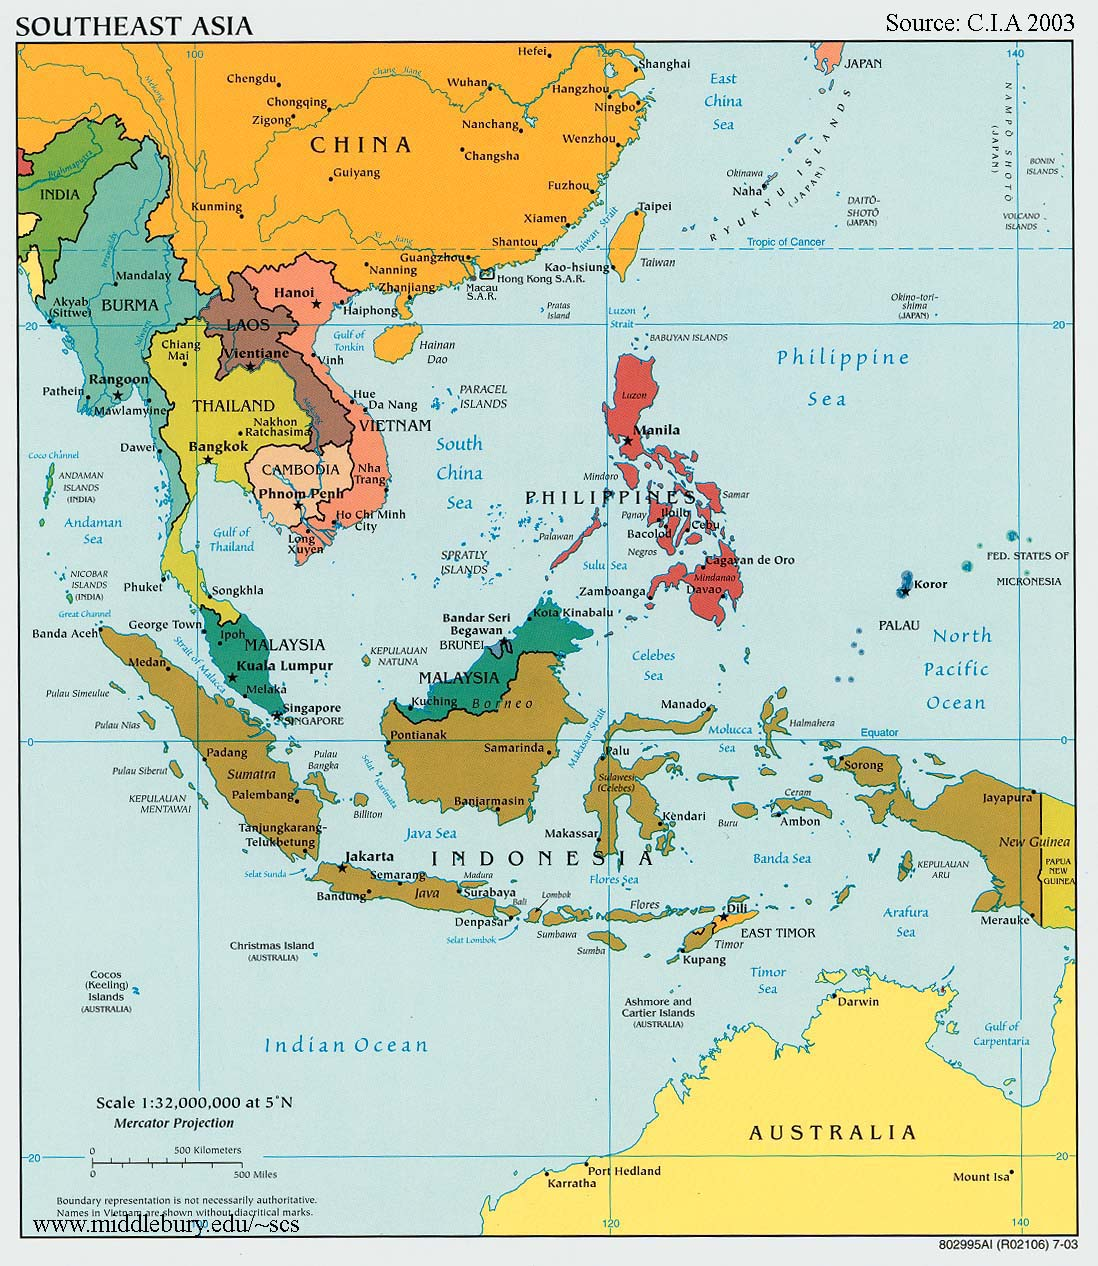 Southeast-Asia-Political-Map-CIA-2003